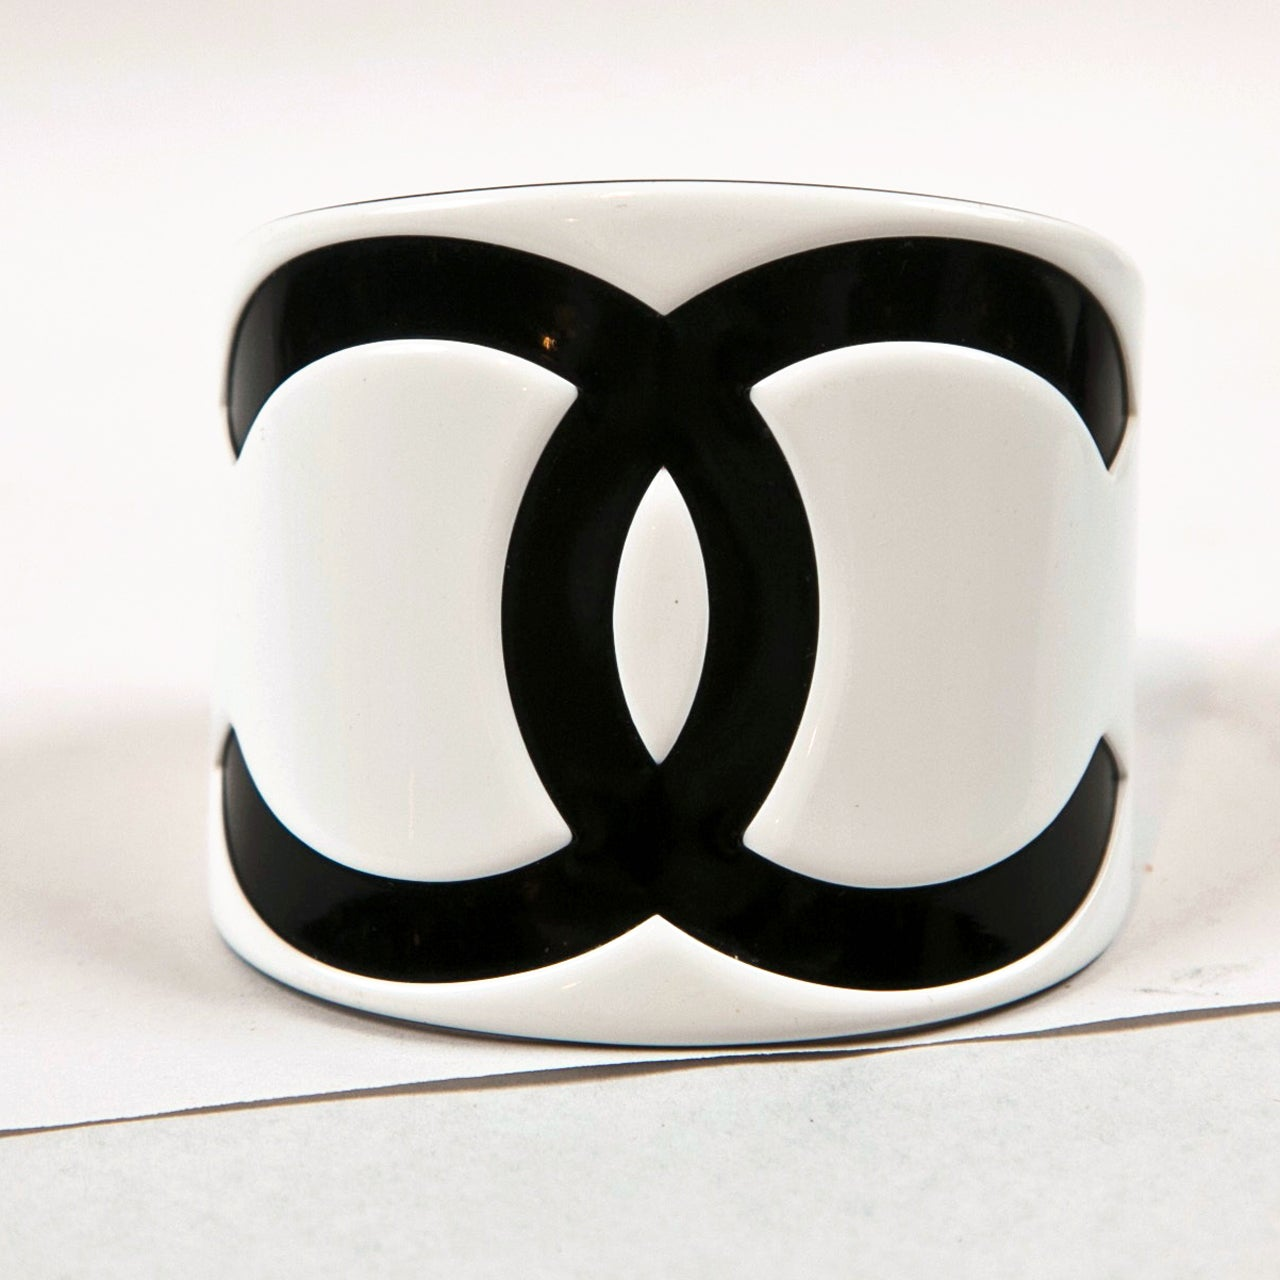 Chanel Resin Cuff image 6